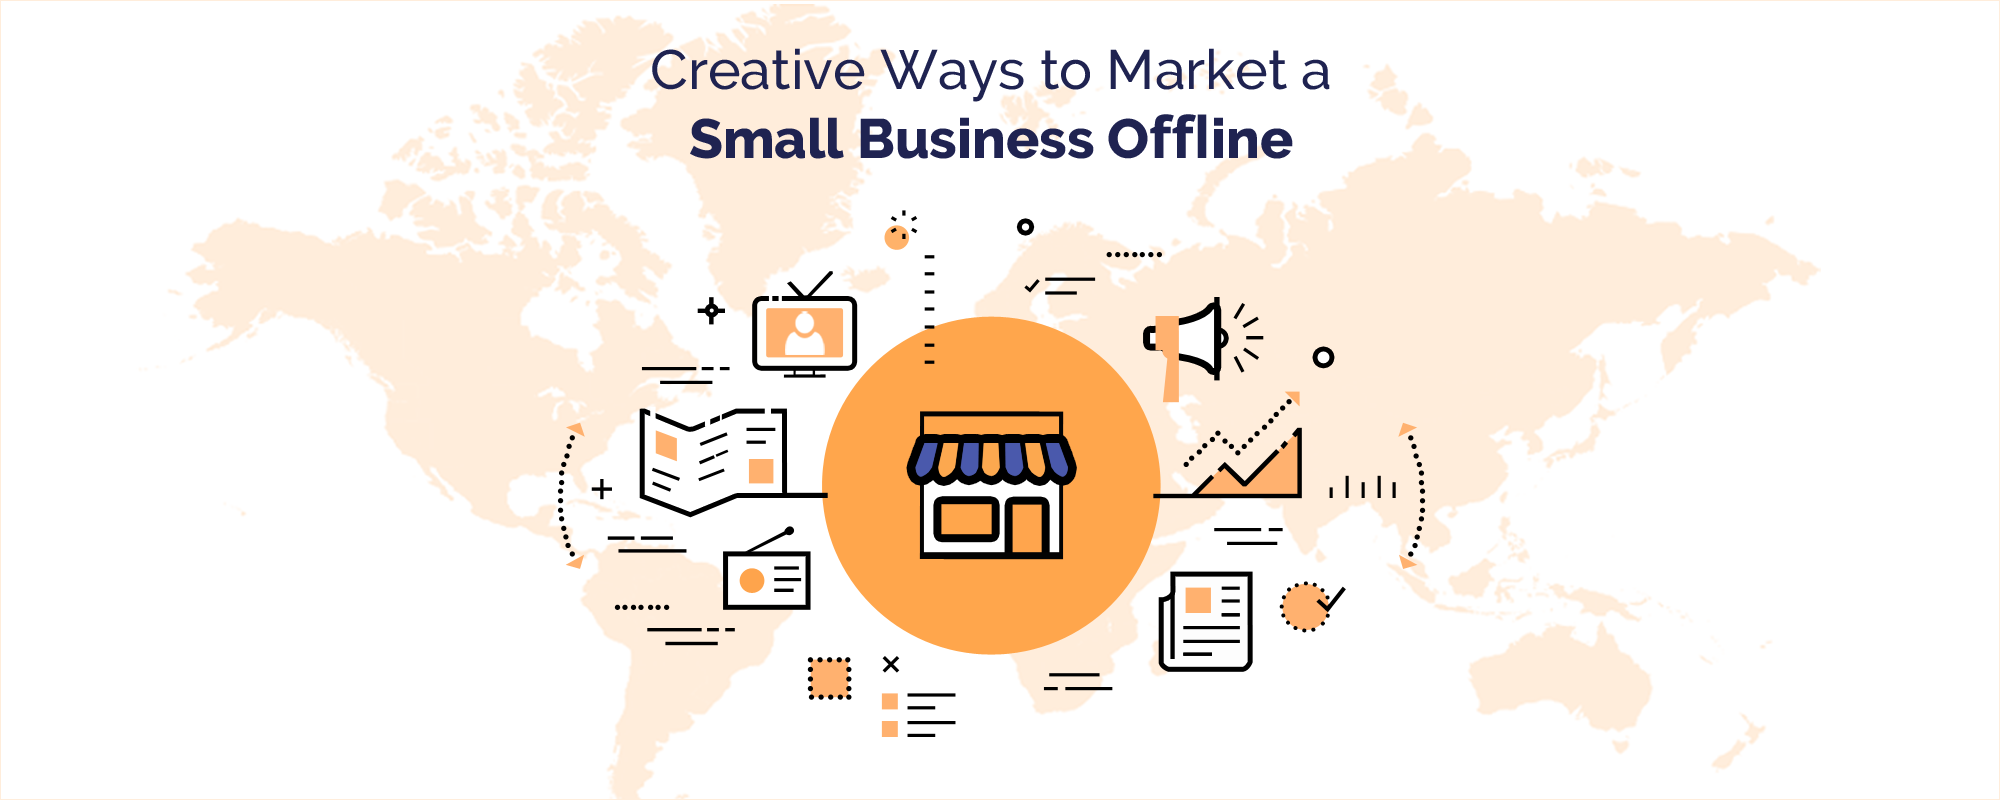 5 Creative Offline Marketing Strategies for Small Businesses